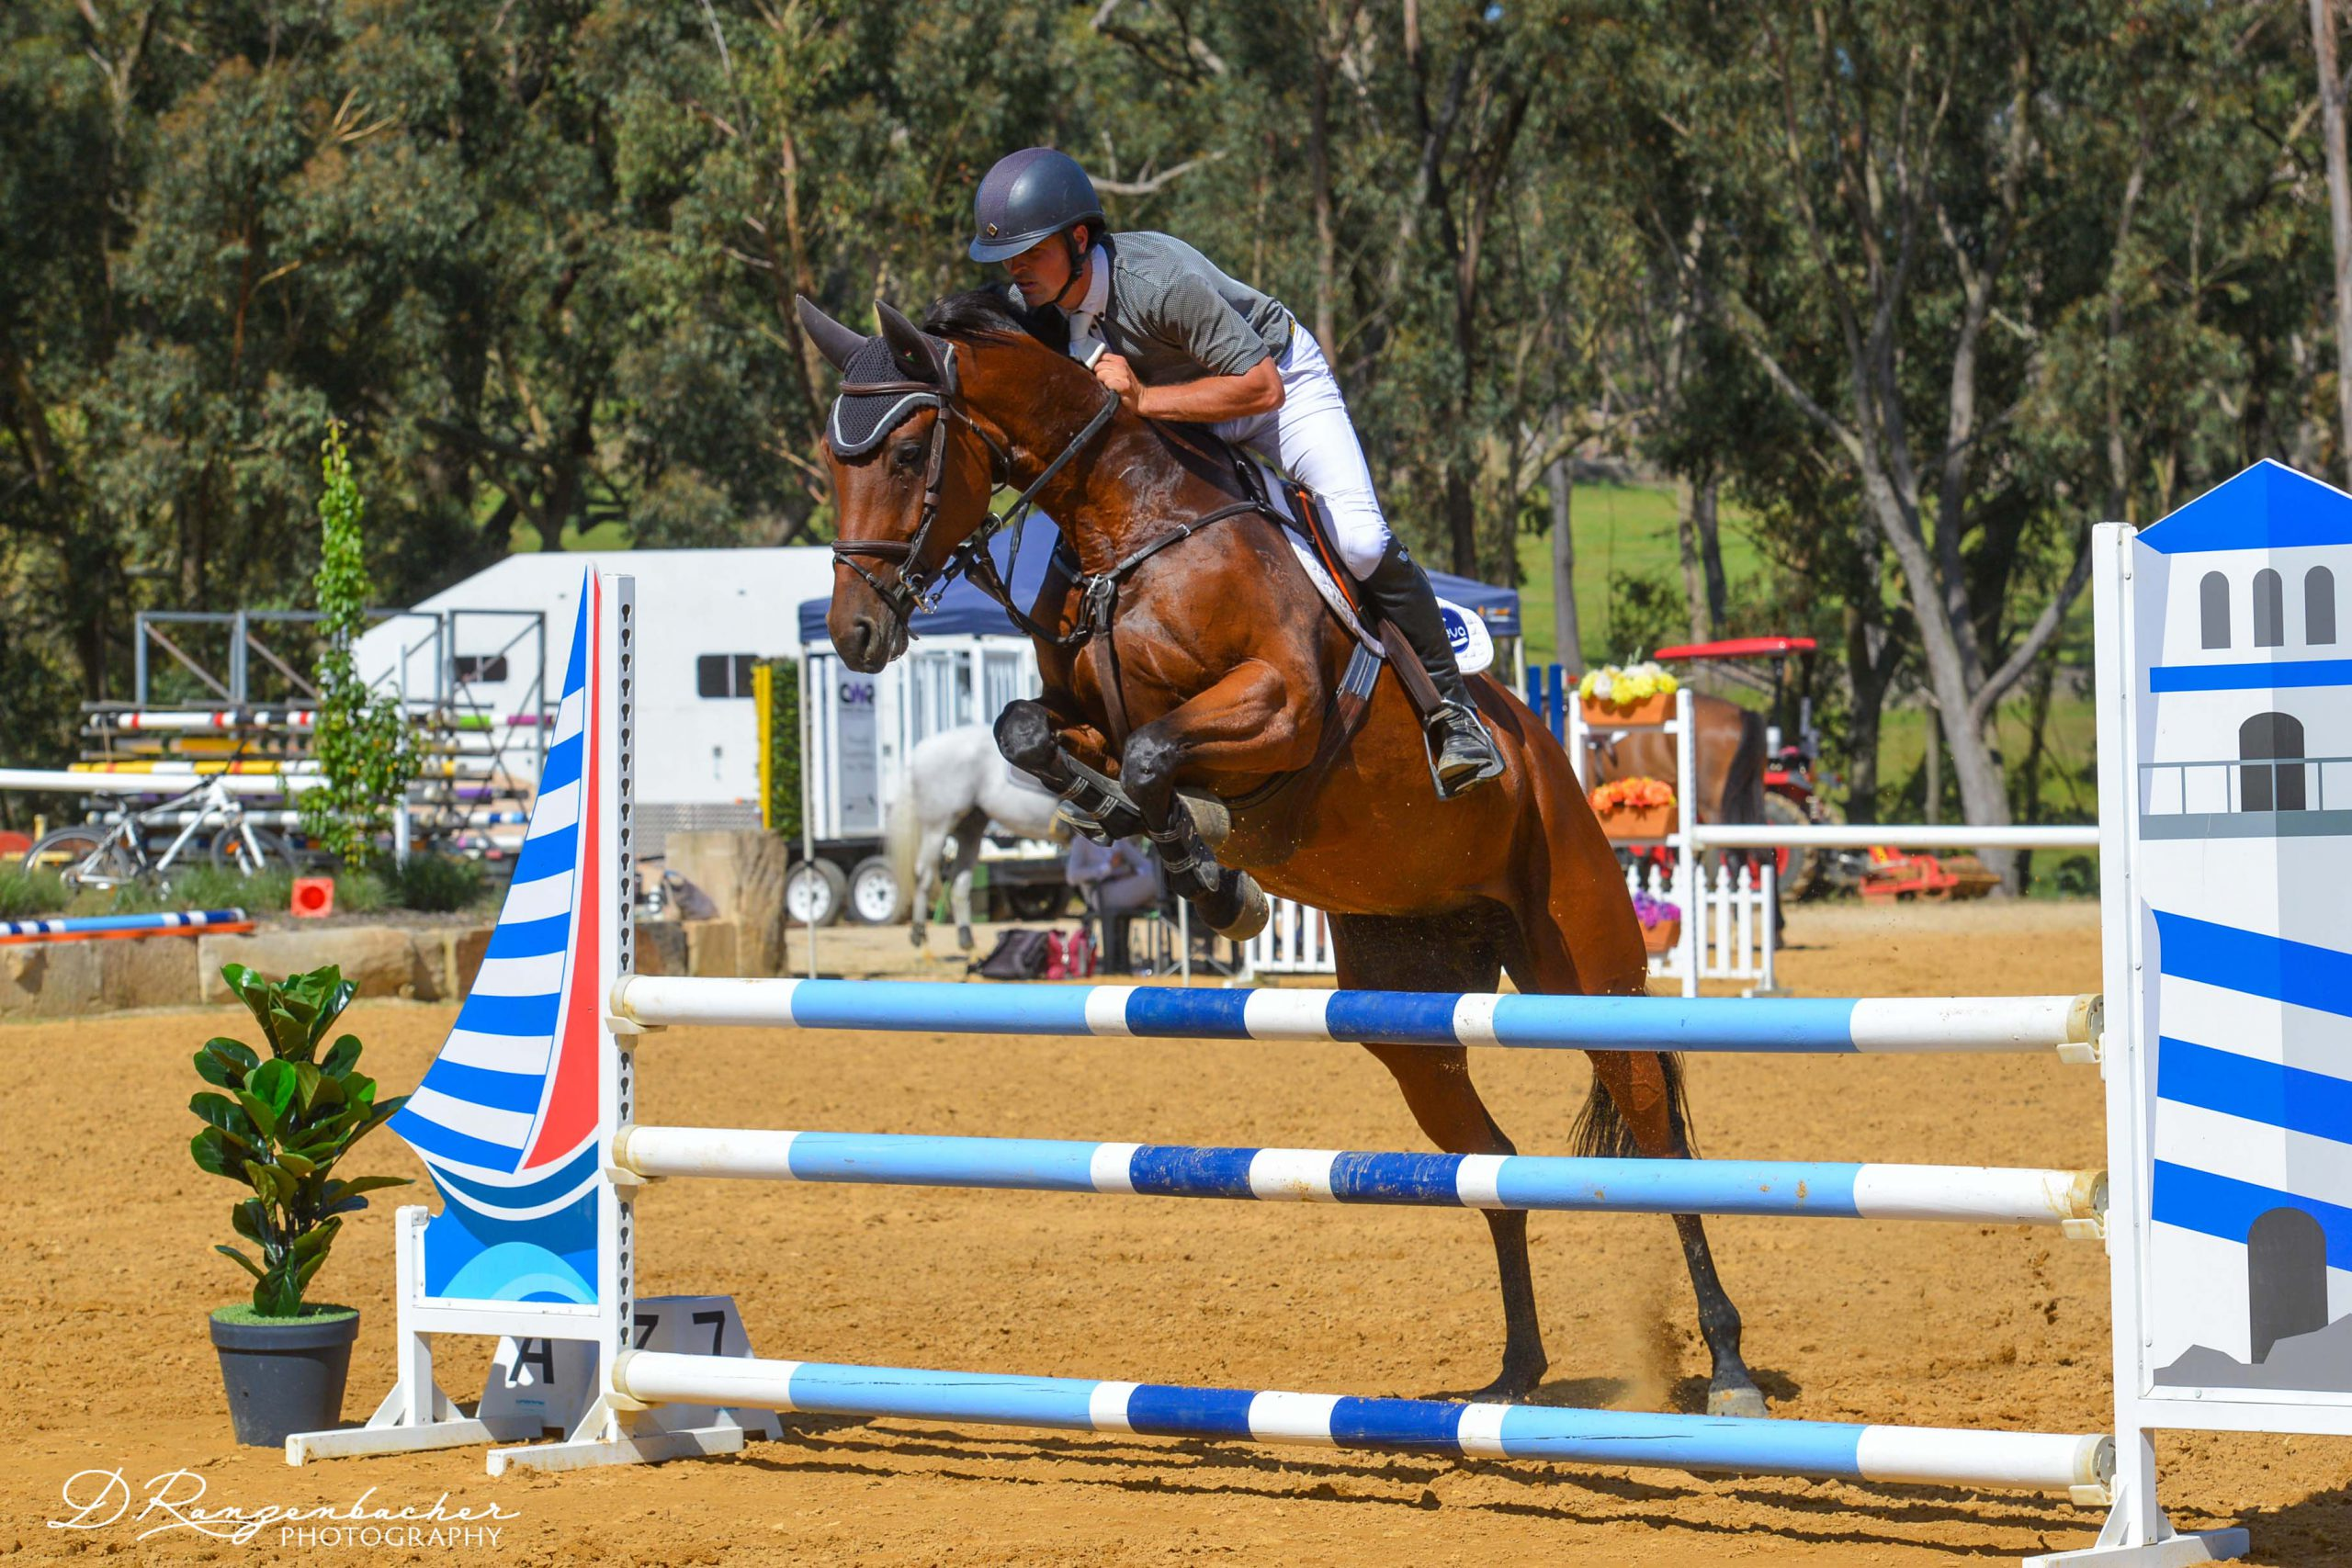 OAR Propelling Retired Racehorses Into New Careers